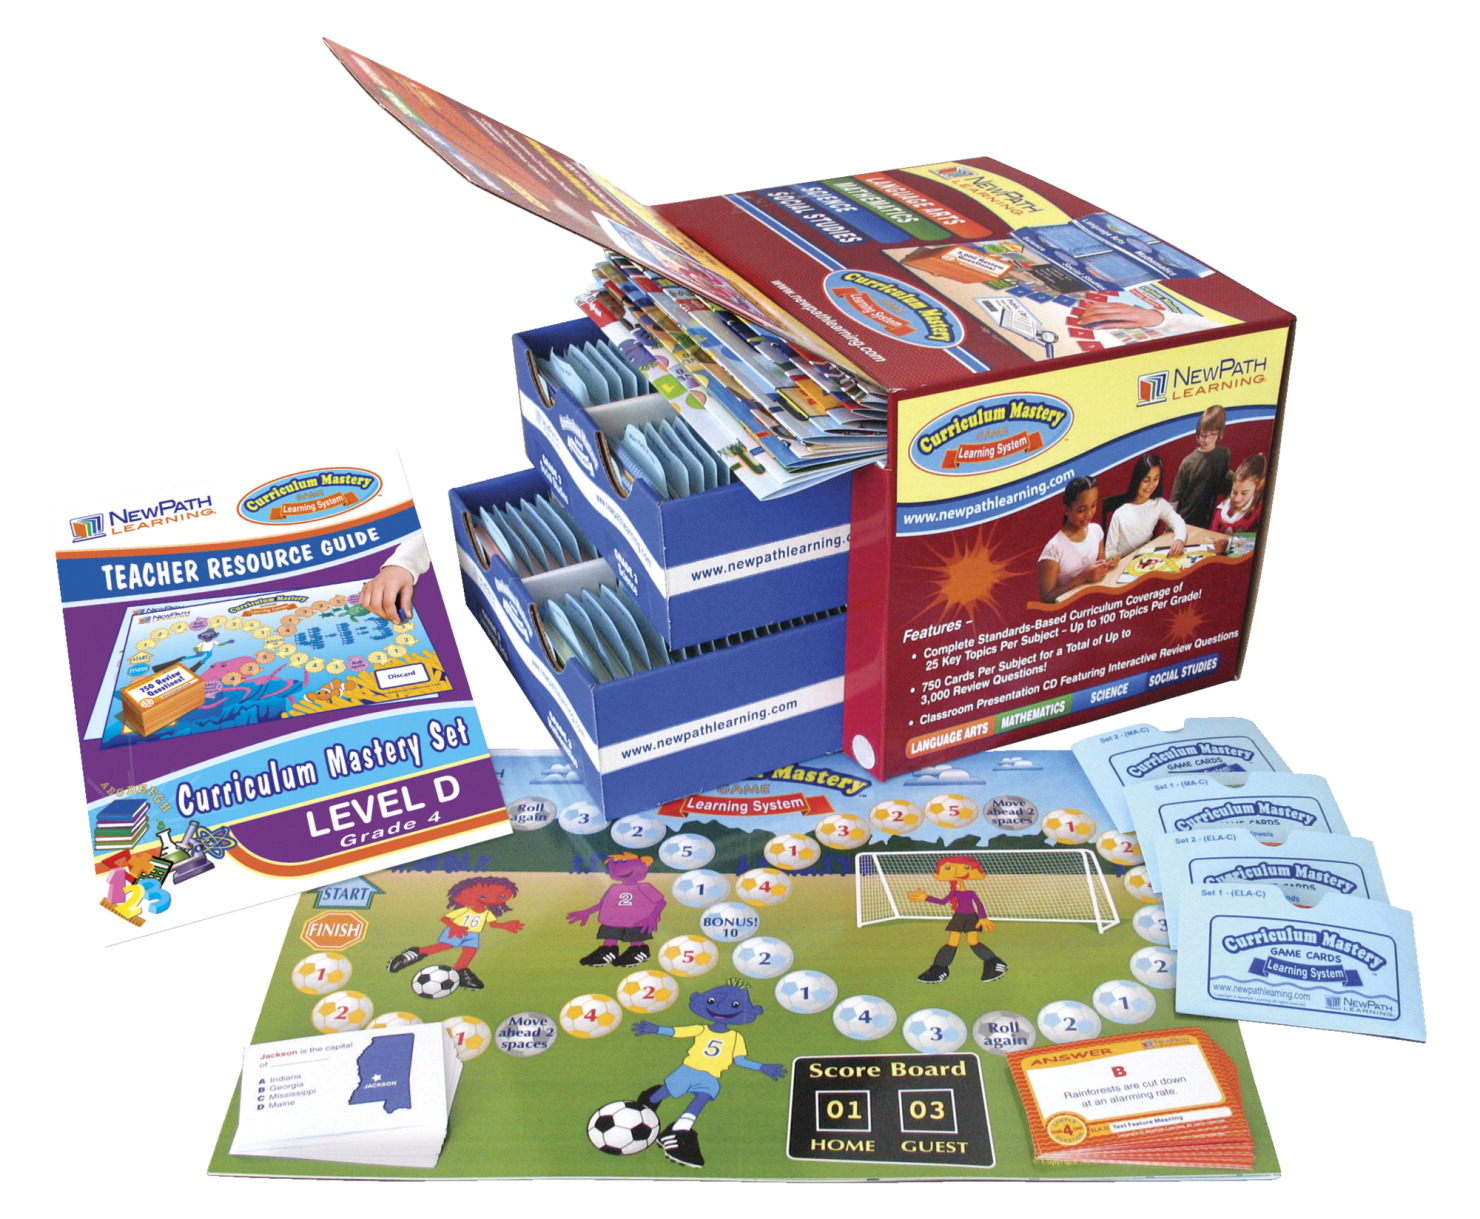 Newpath Curriculum Mastery Game Set, Grade 4